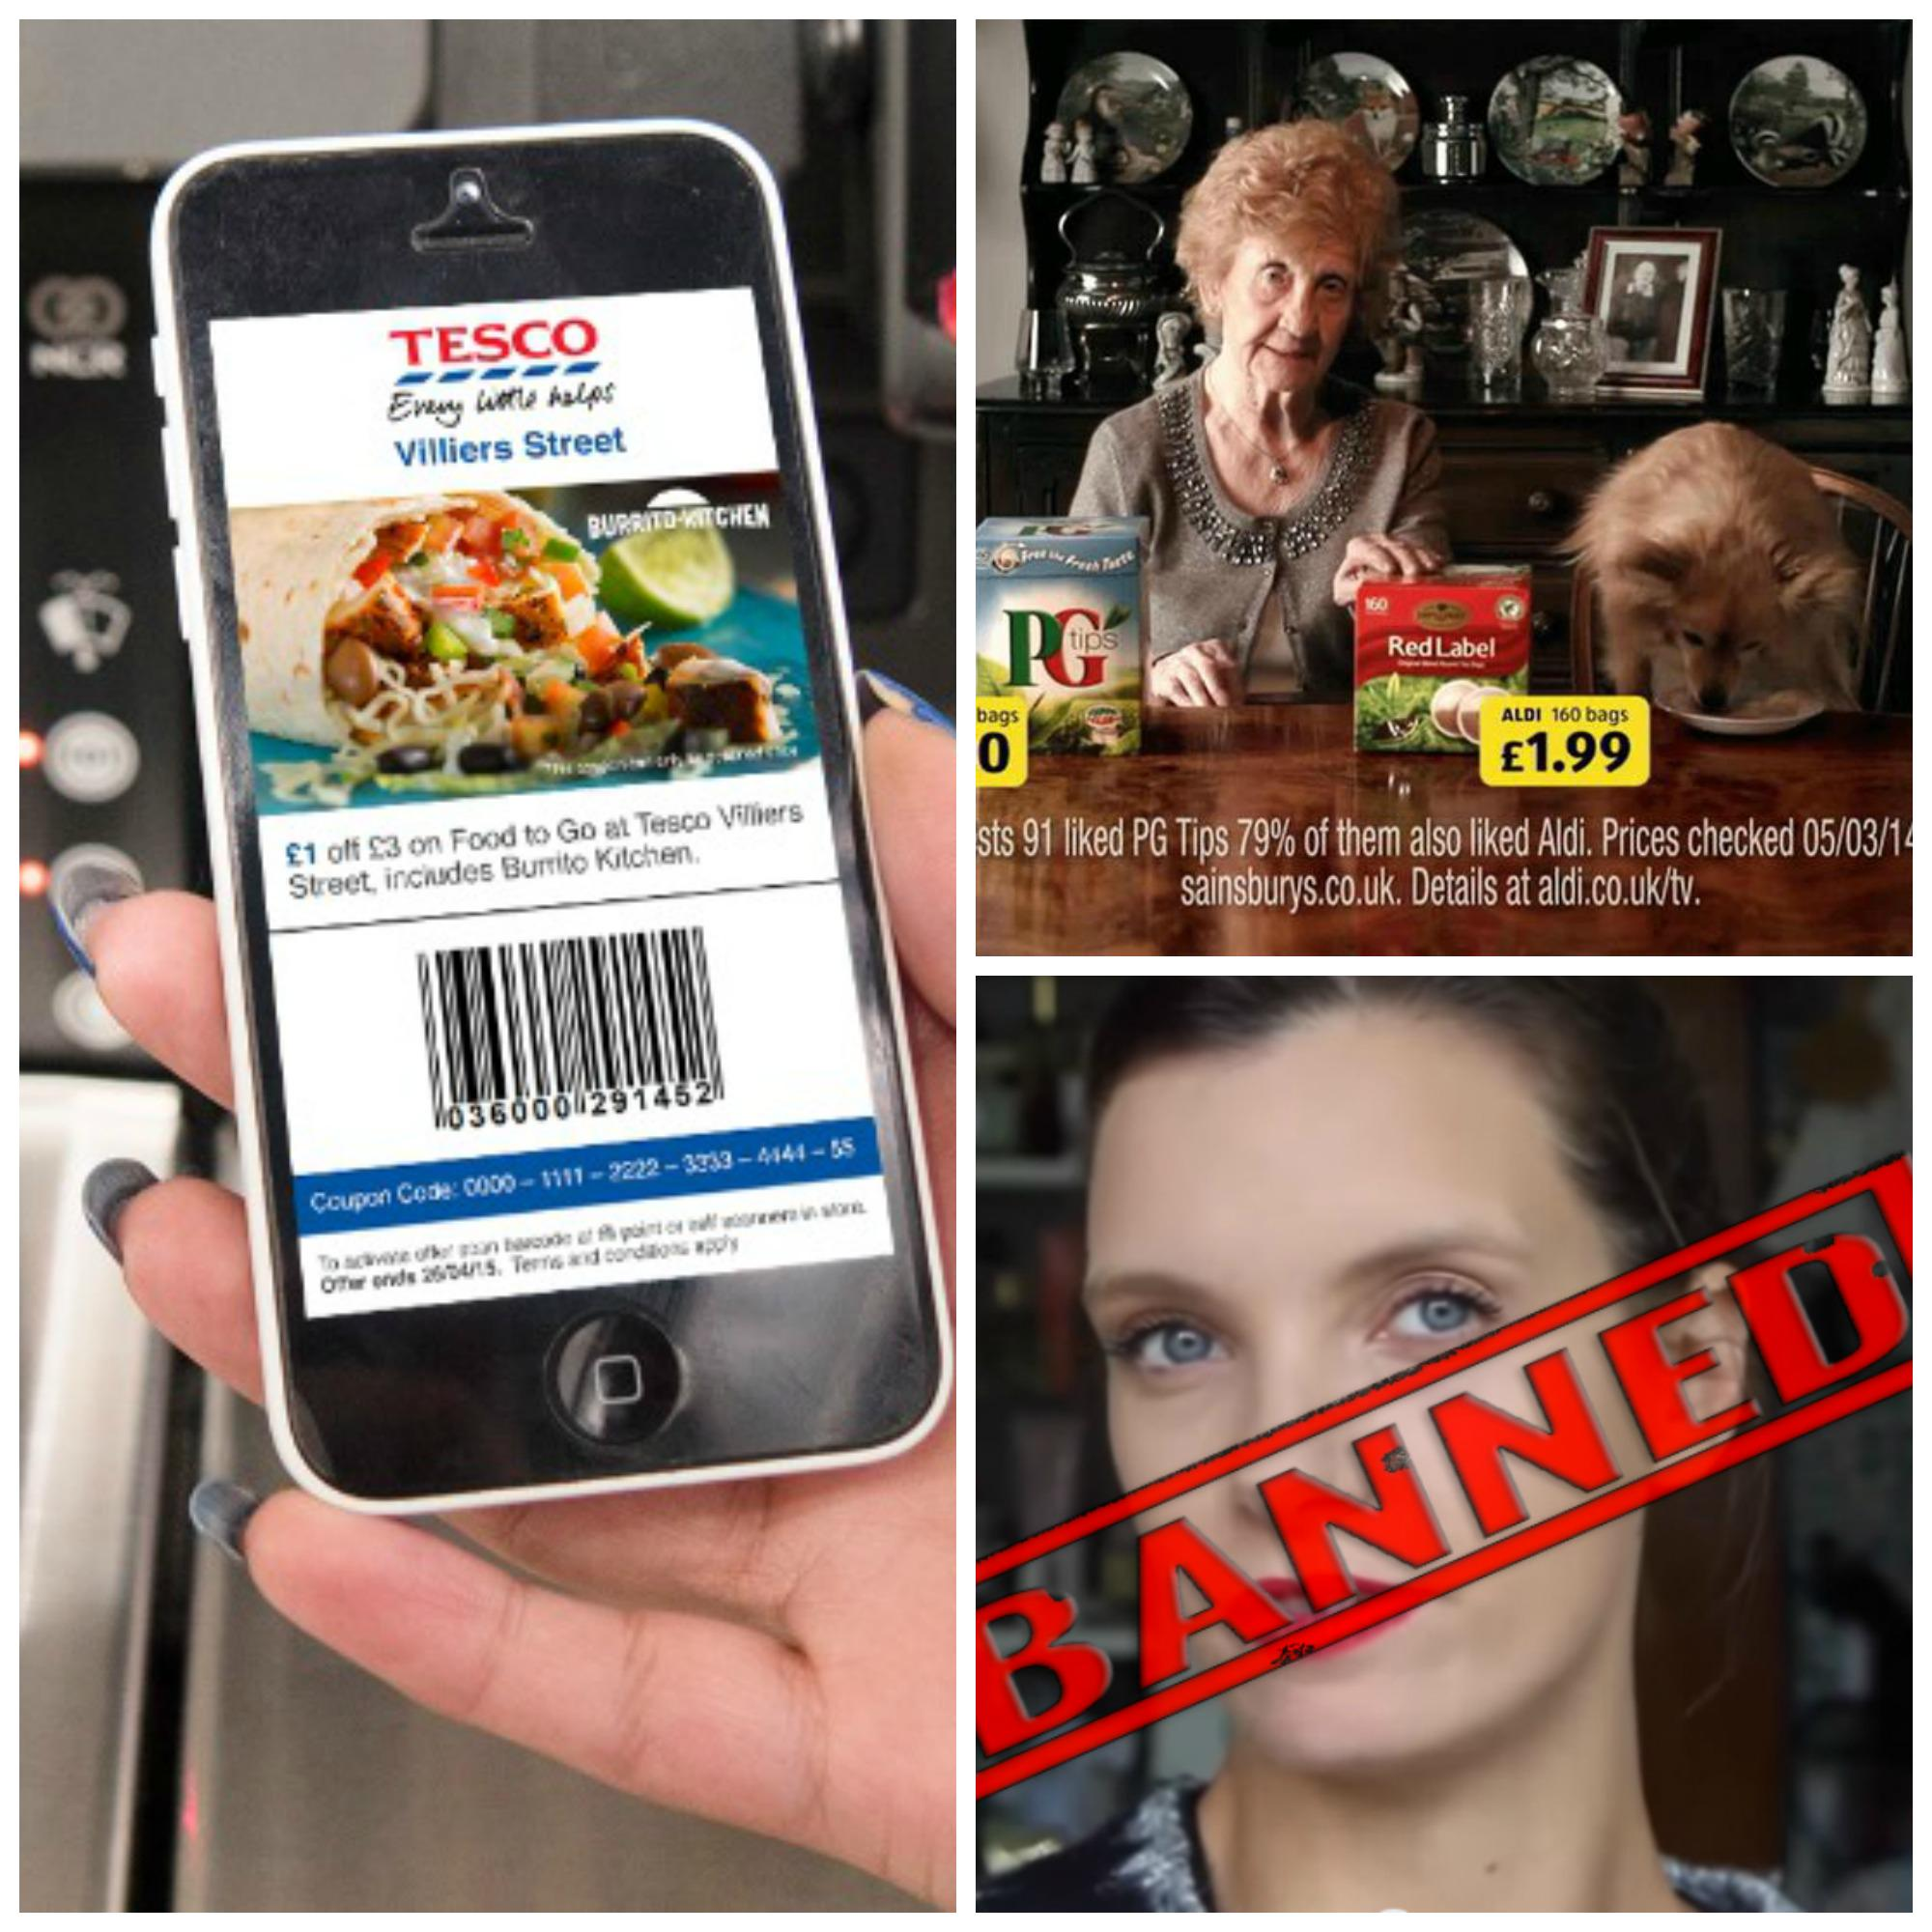 It was a battle of the brands on last night's #1805 featuring: @AldiUK, @amazon and @Tesco http://t.co/LqwBOfMbdh http://t.co/nHdKh0UQz7